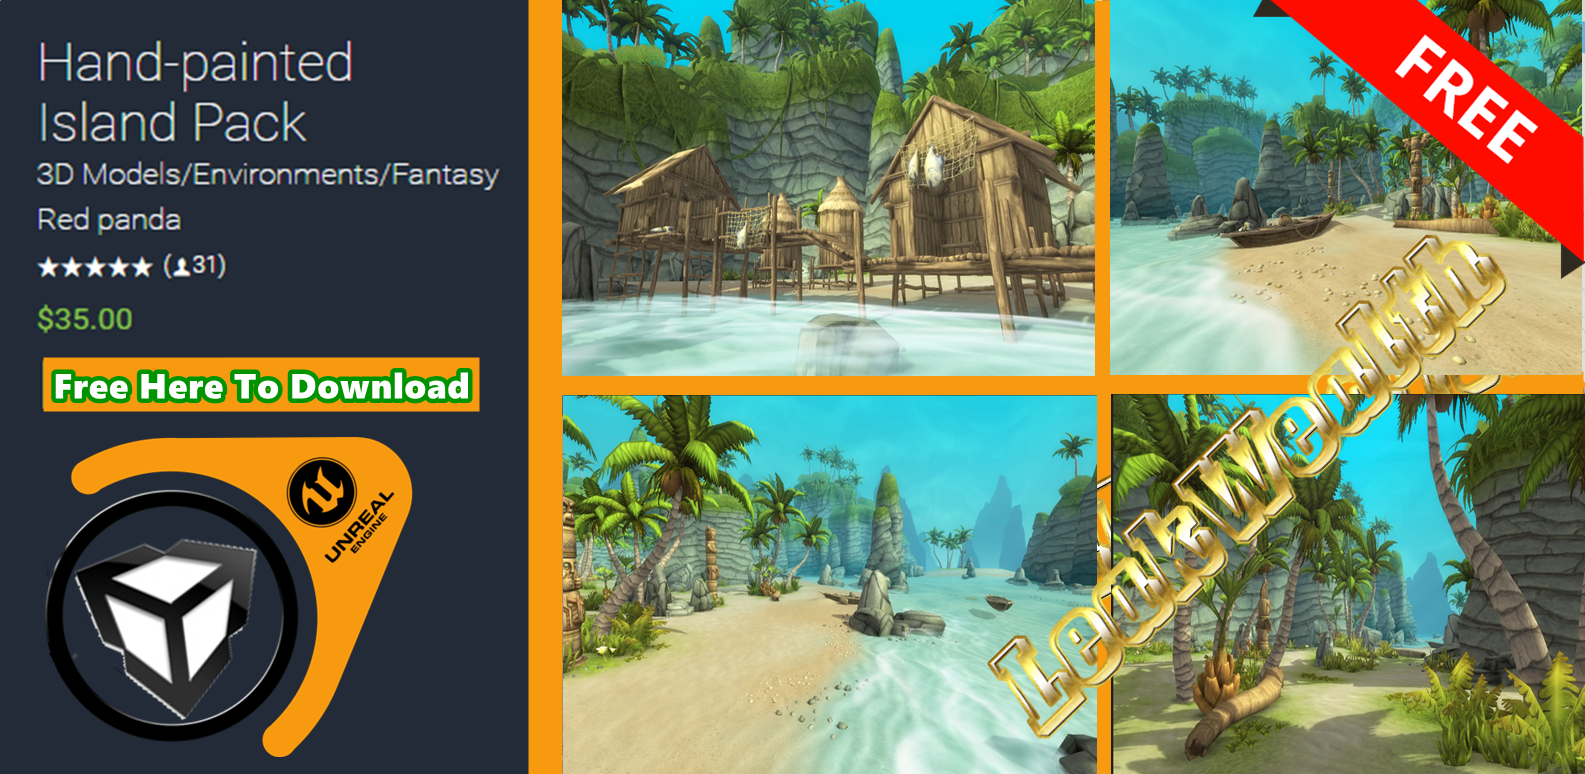 Hand-painted Island Pack - Game Art 3D